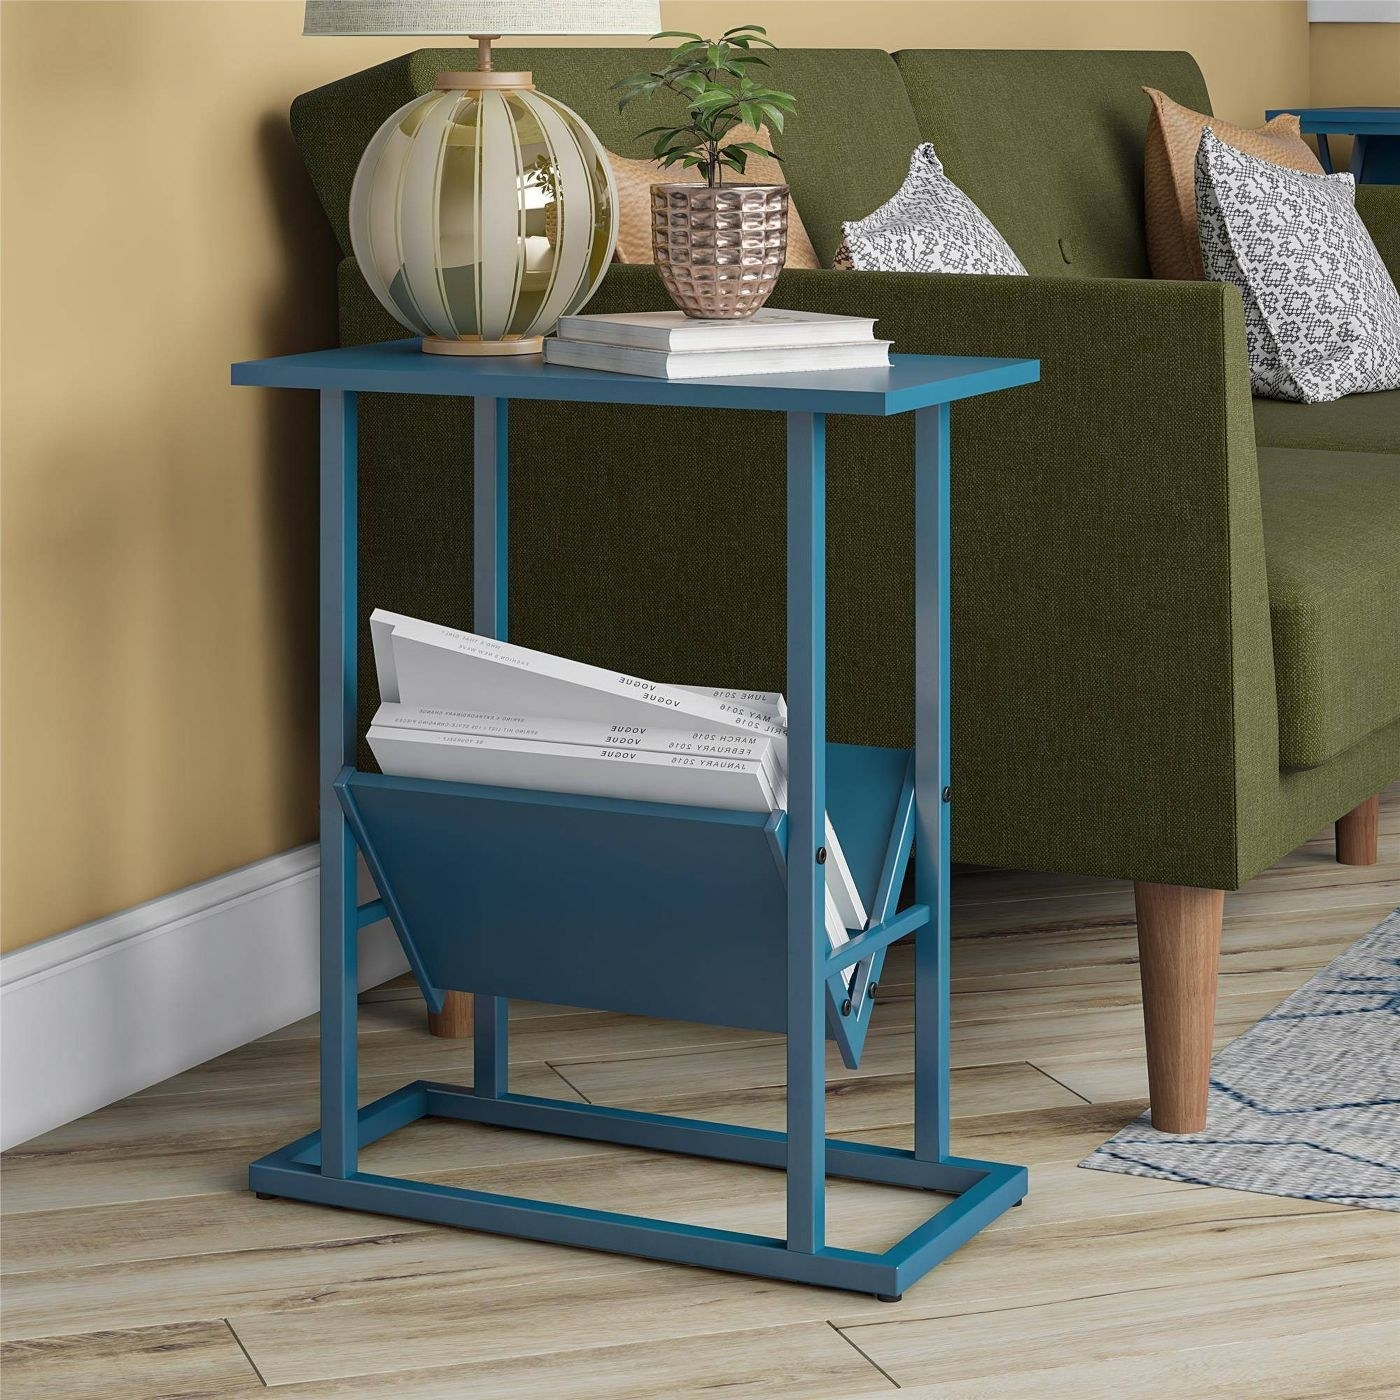 blue end table with white magazines on the bottom